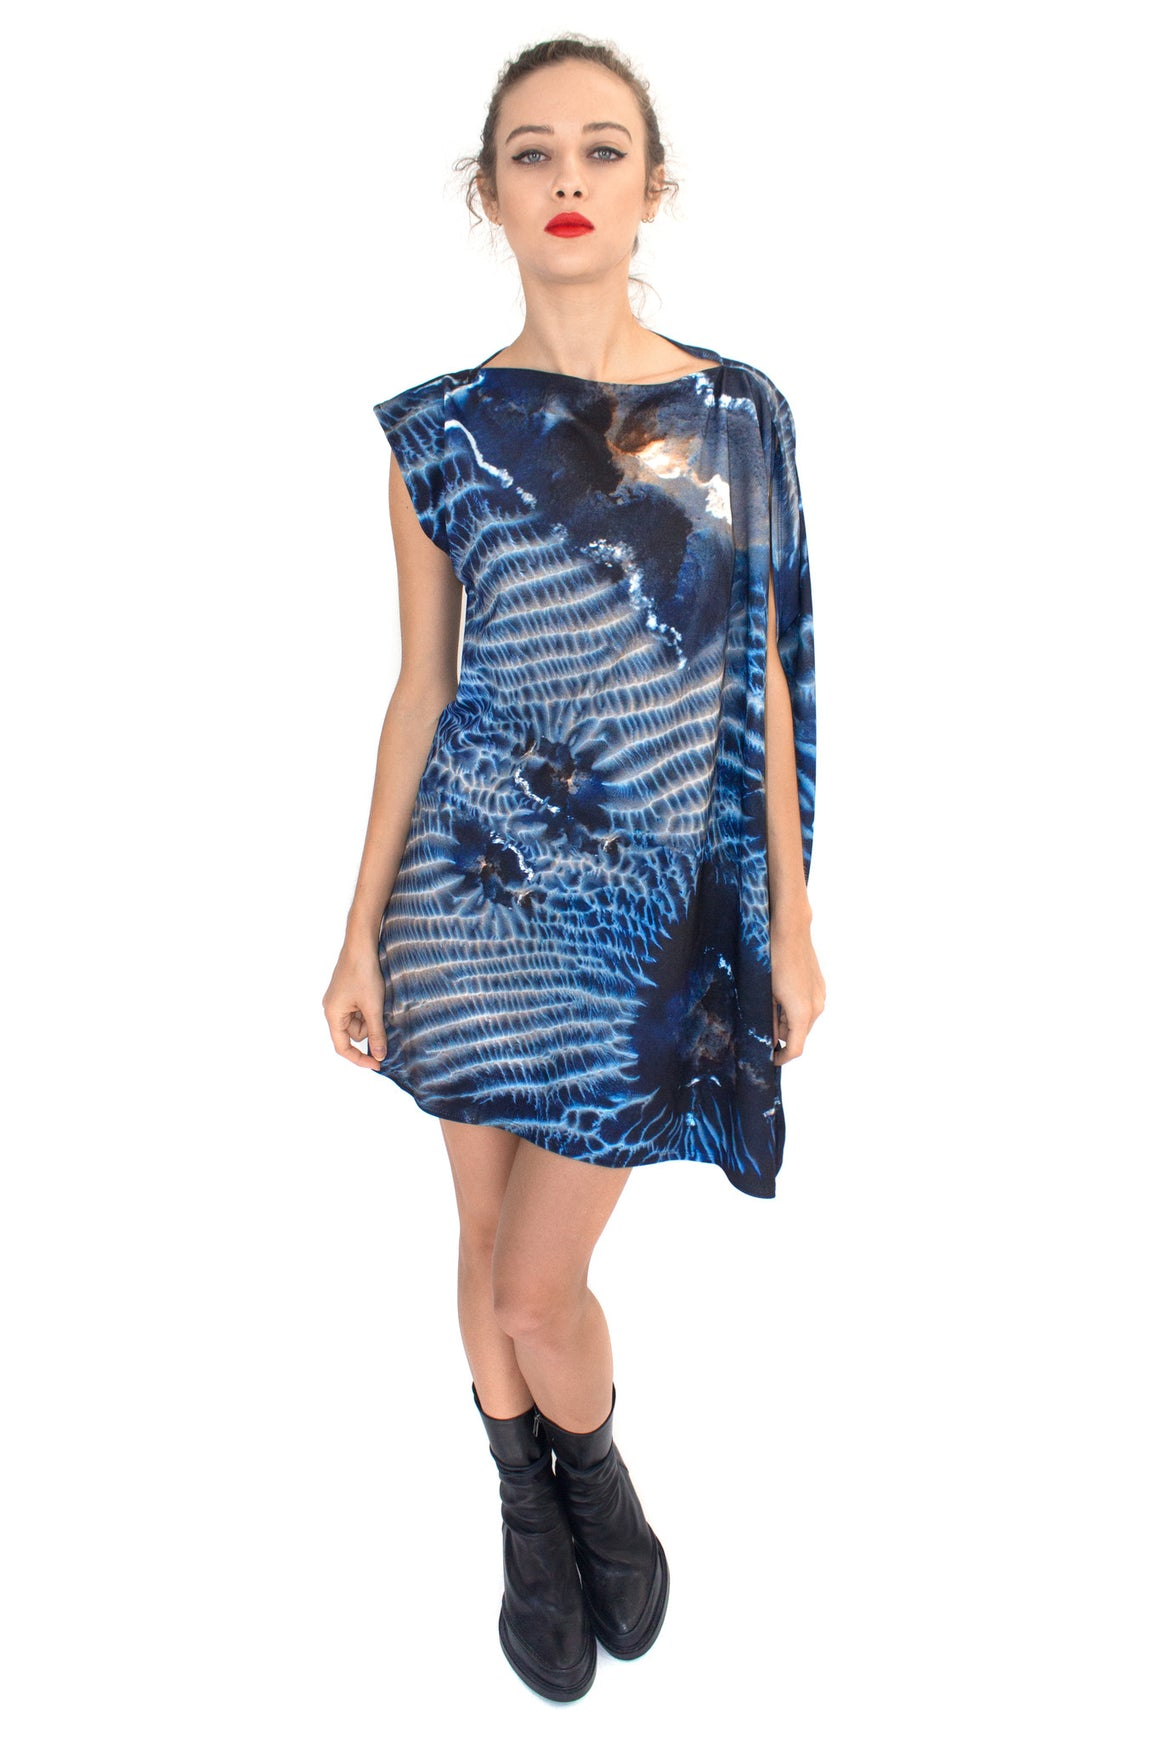 Mars Dunes Jersey Dress, Shadowplay New York, Mars Print, Mars Clothing